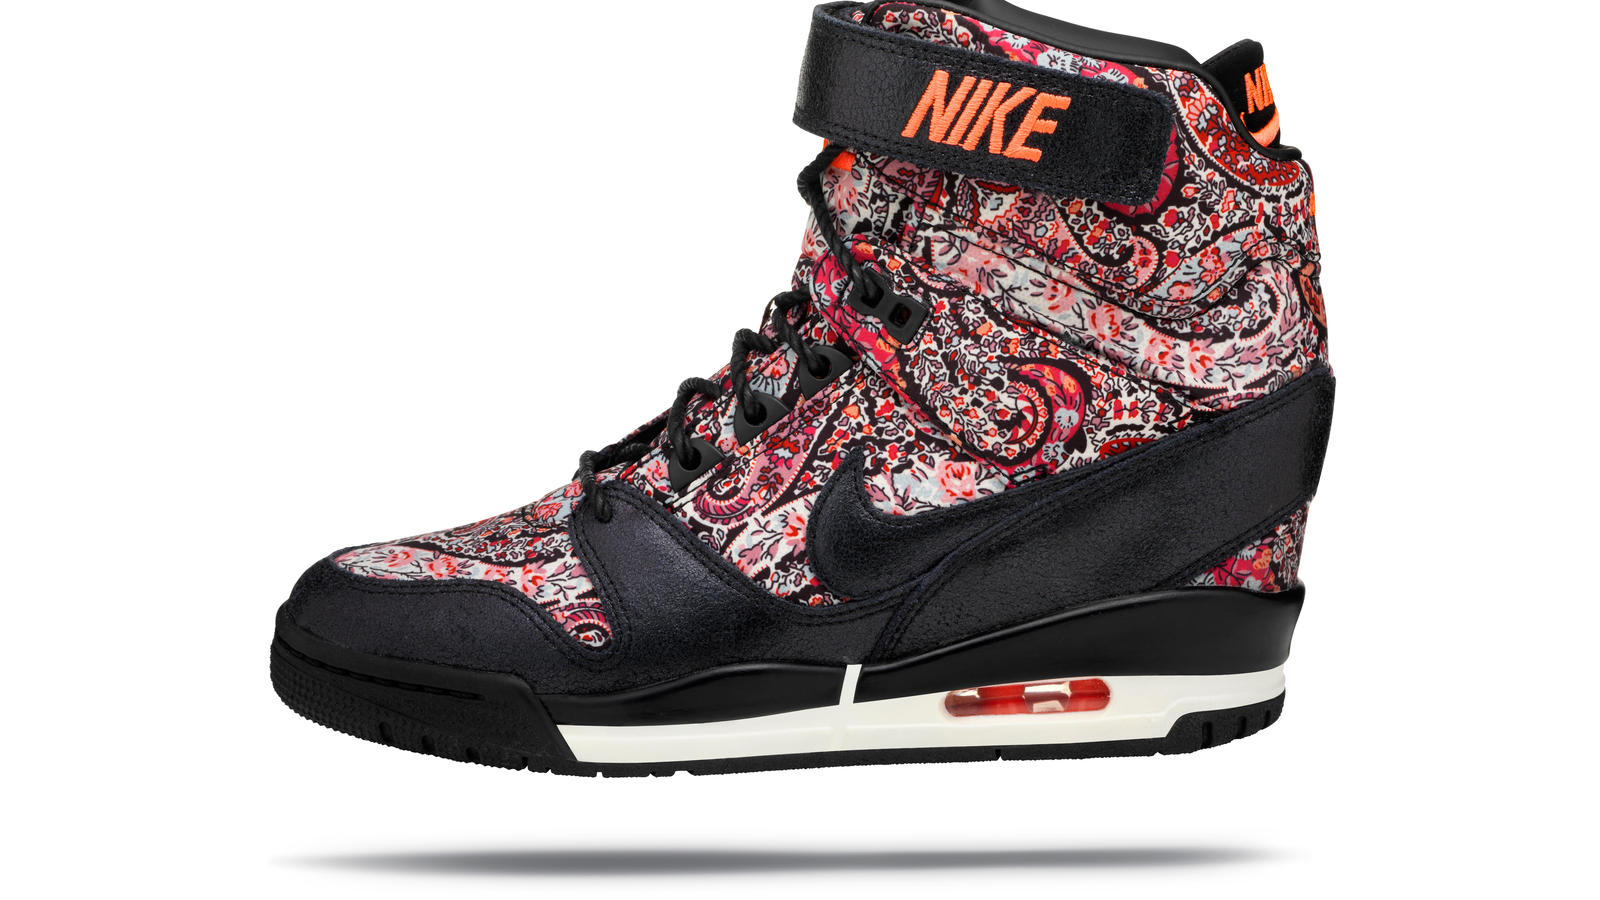 classic style many styles fashion styles The Nike x Liberty Collection - Nike News